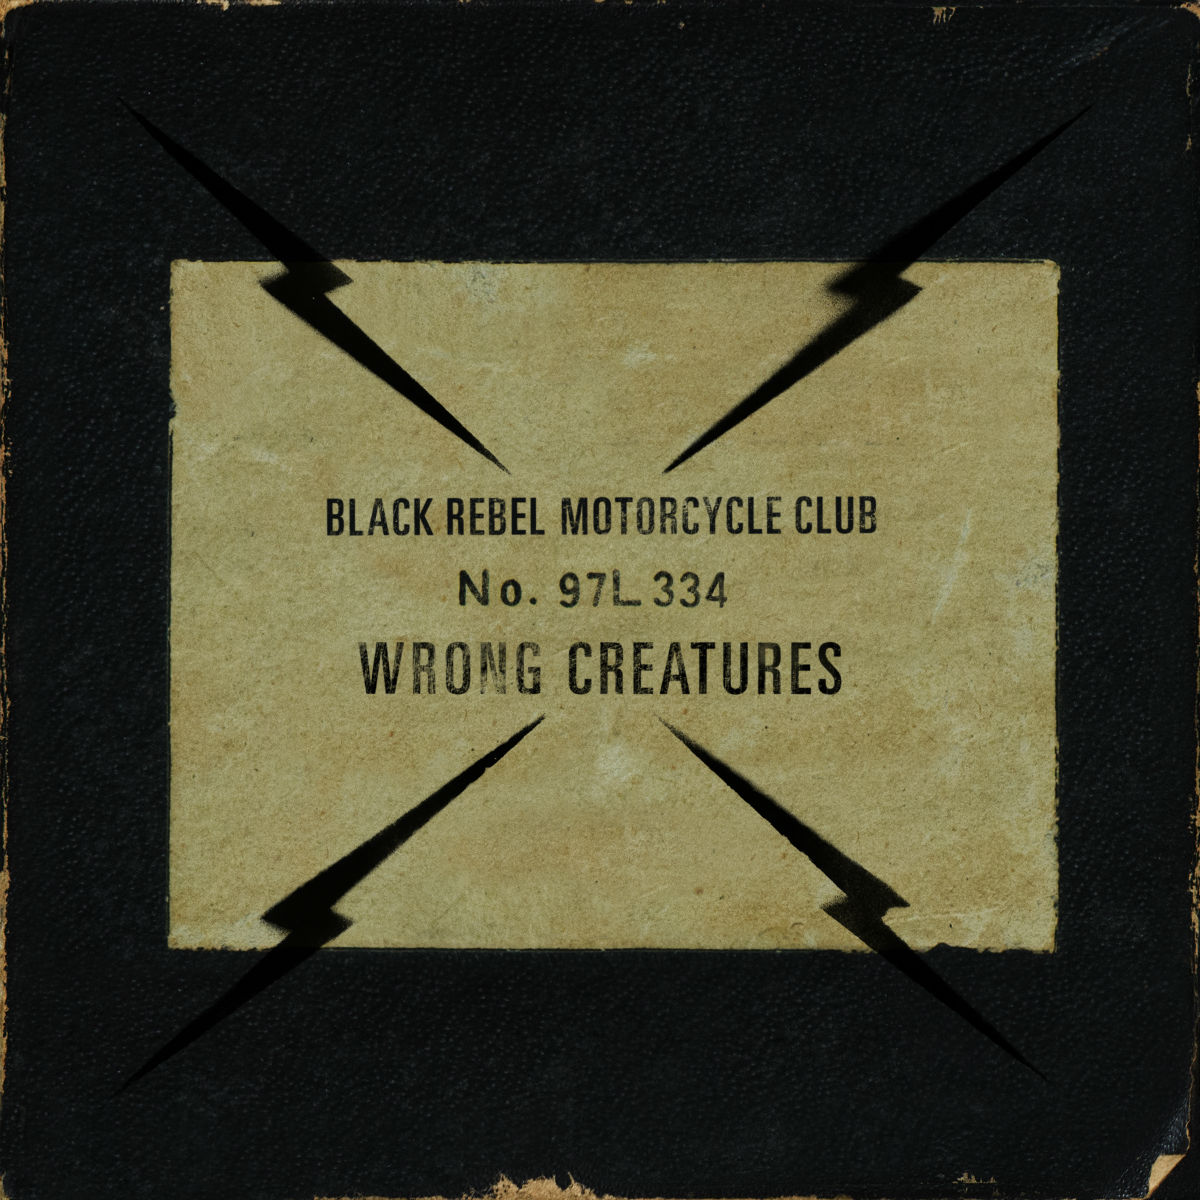 Wrong Creatures - Black Rebel Motorcycle Club